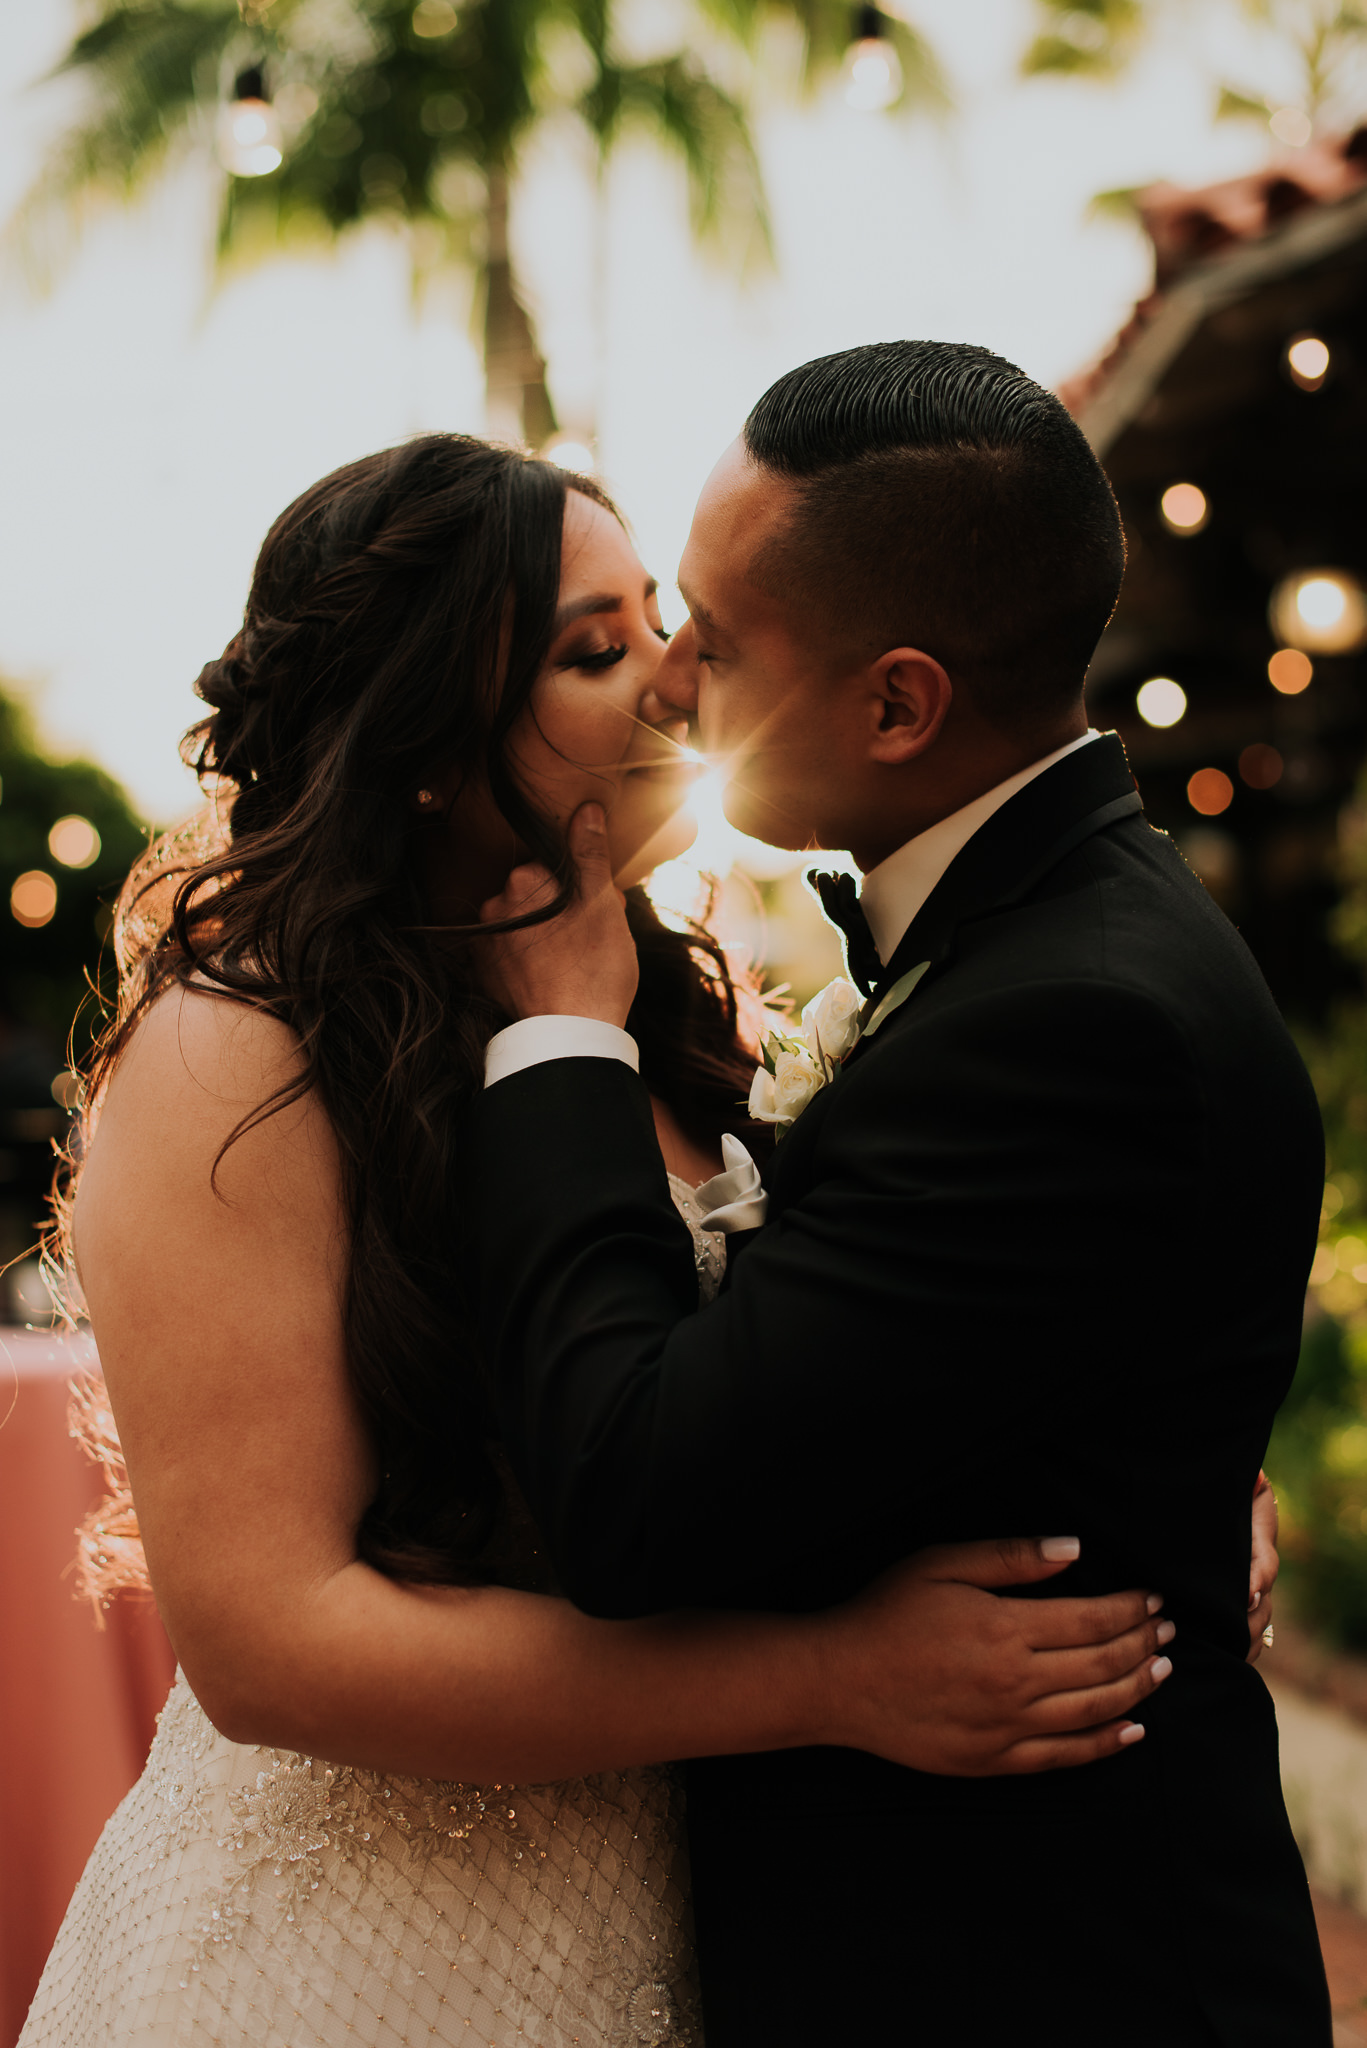 2019-04-05_Brittany_and_Nick_-_Married_-_San_Juan_Capistrano-129.jpg